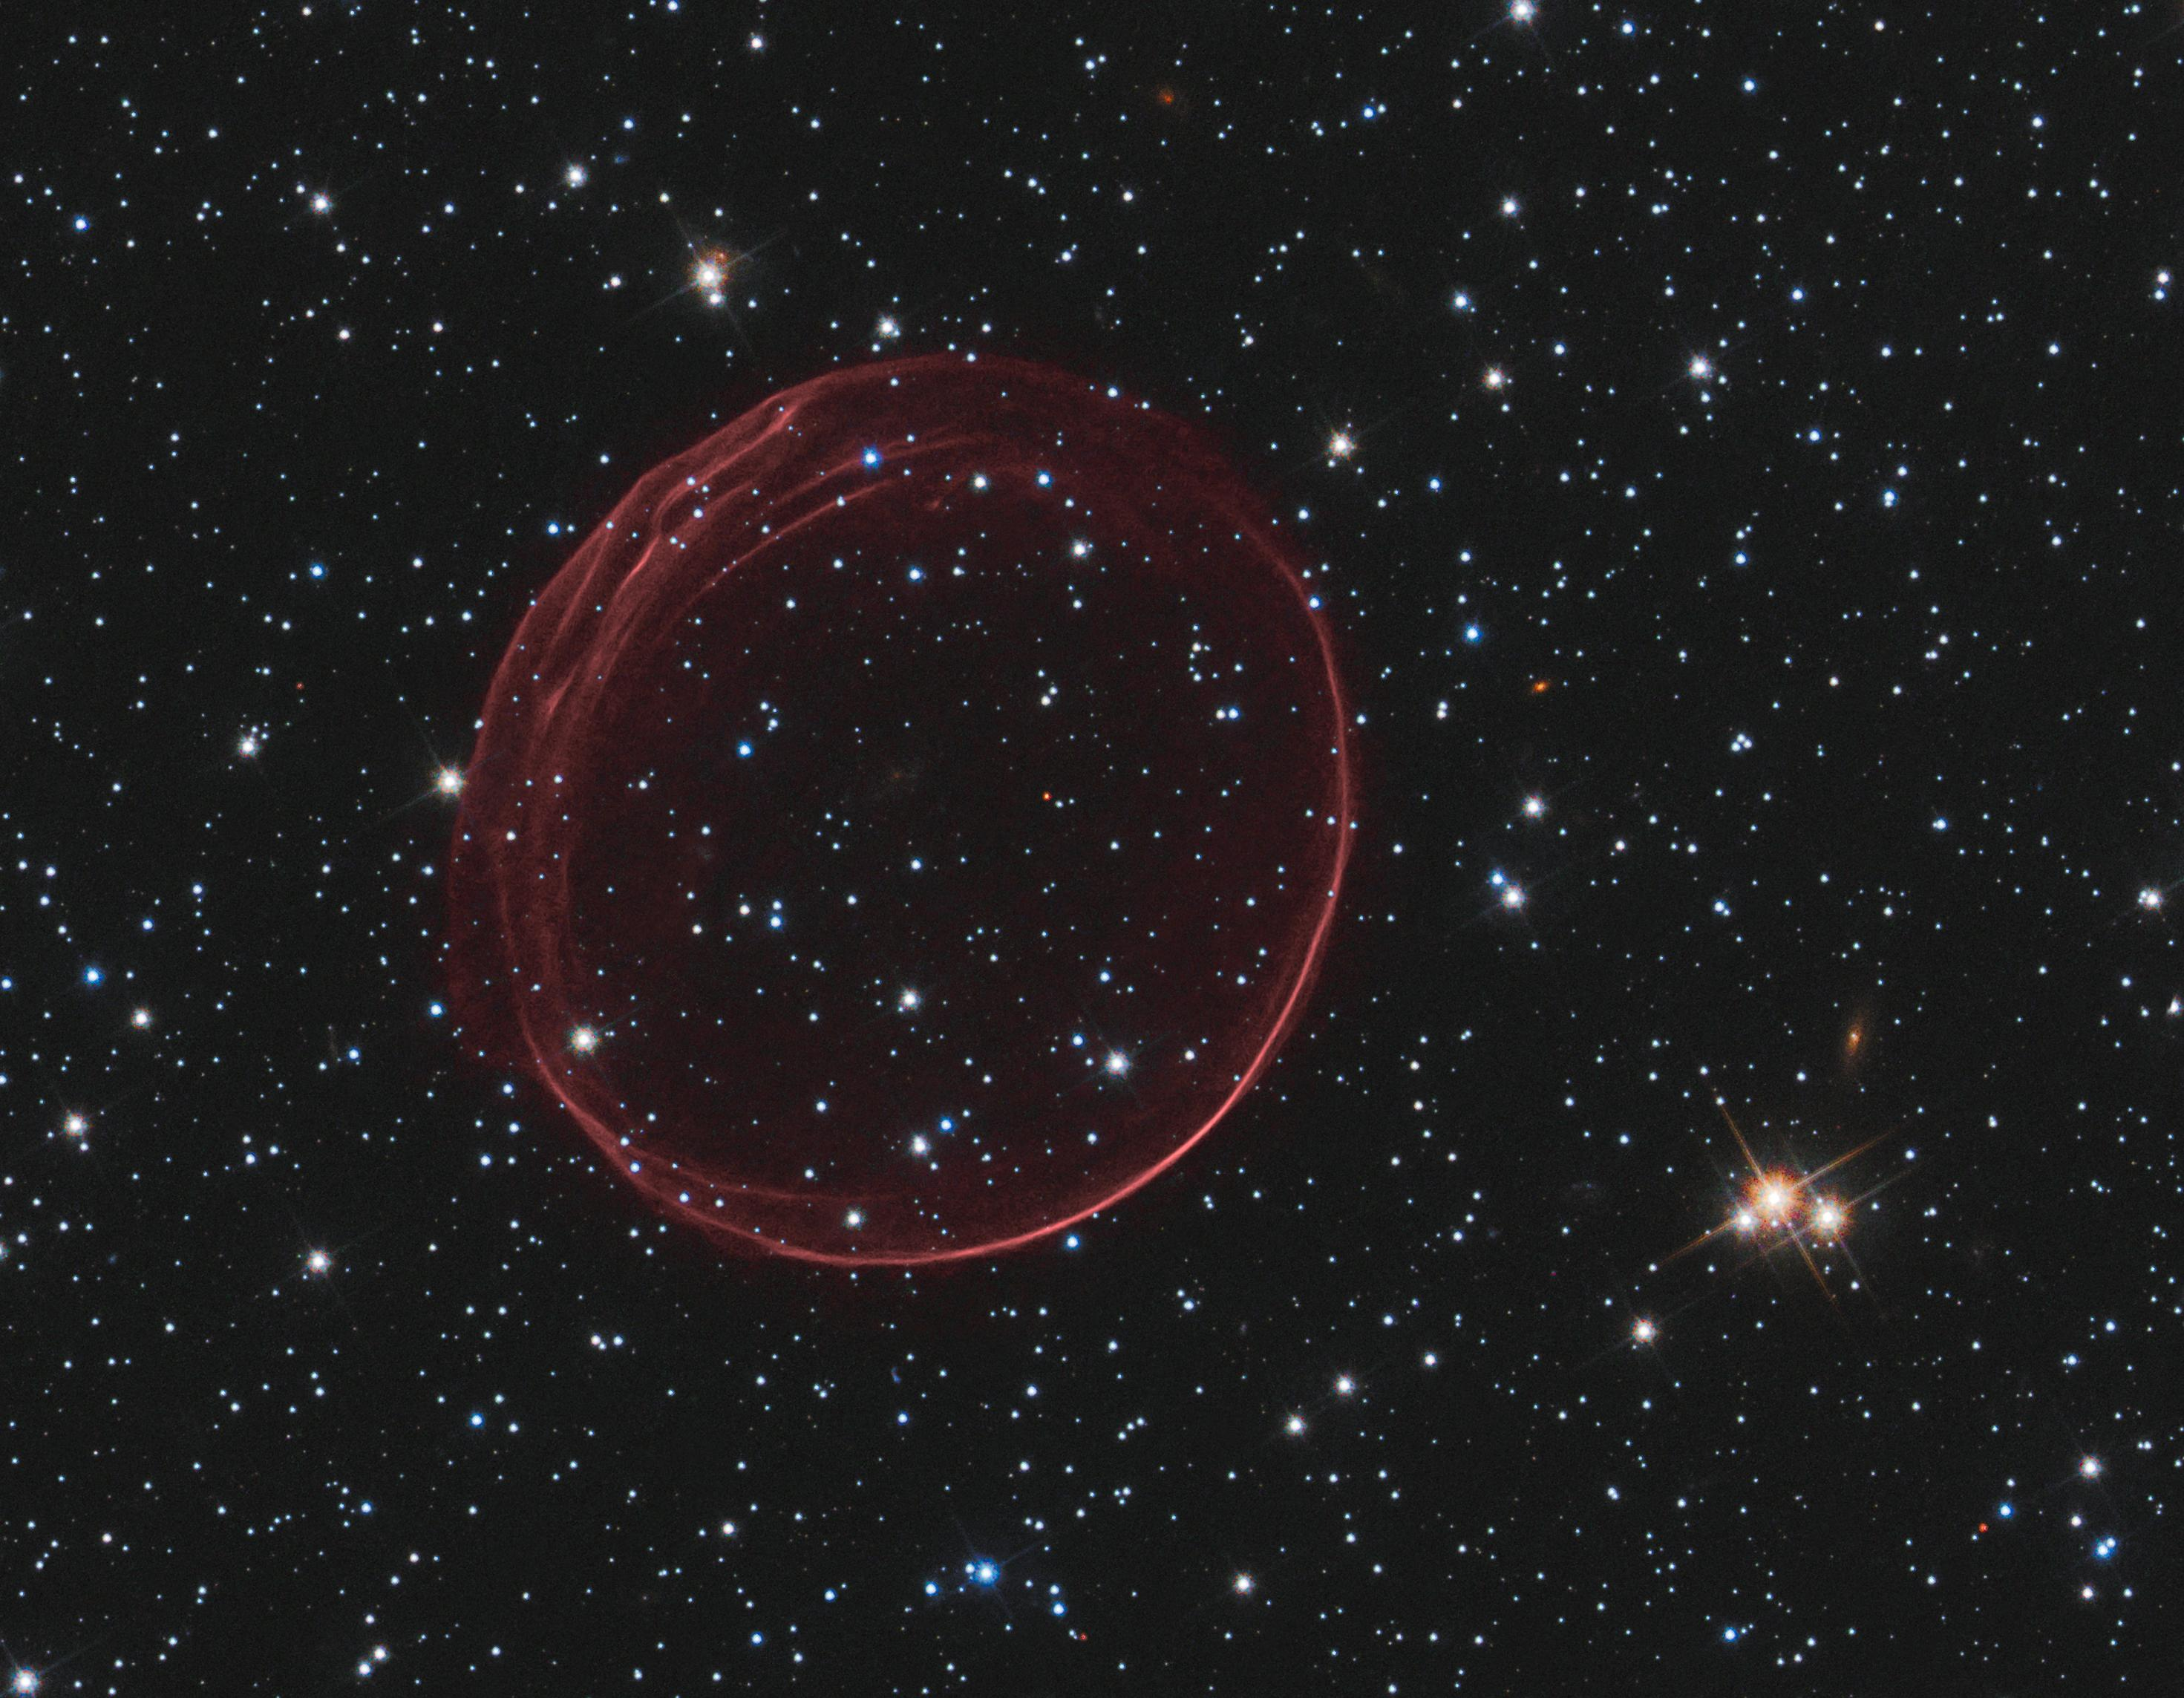 A sphere of gas floats in the depths of space. Called SNR 0509-67.5, the bubble is the visible remains of a powerful stellar explosion in the Large Magellanic Cloud, a small galaxy about 160,000 light-years from Earth.